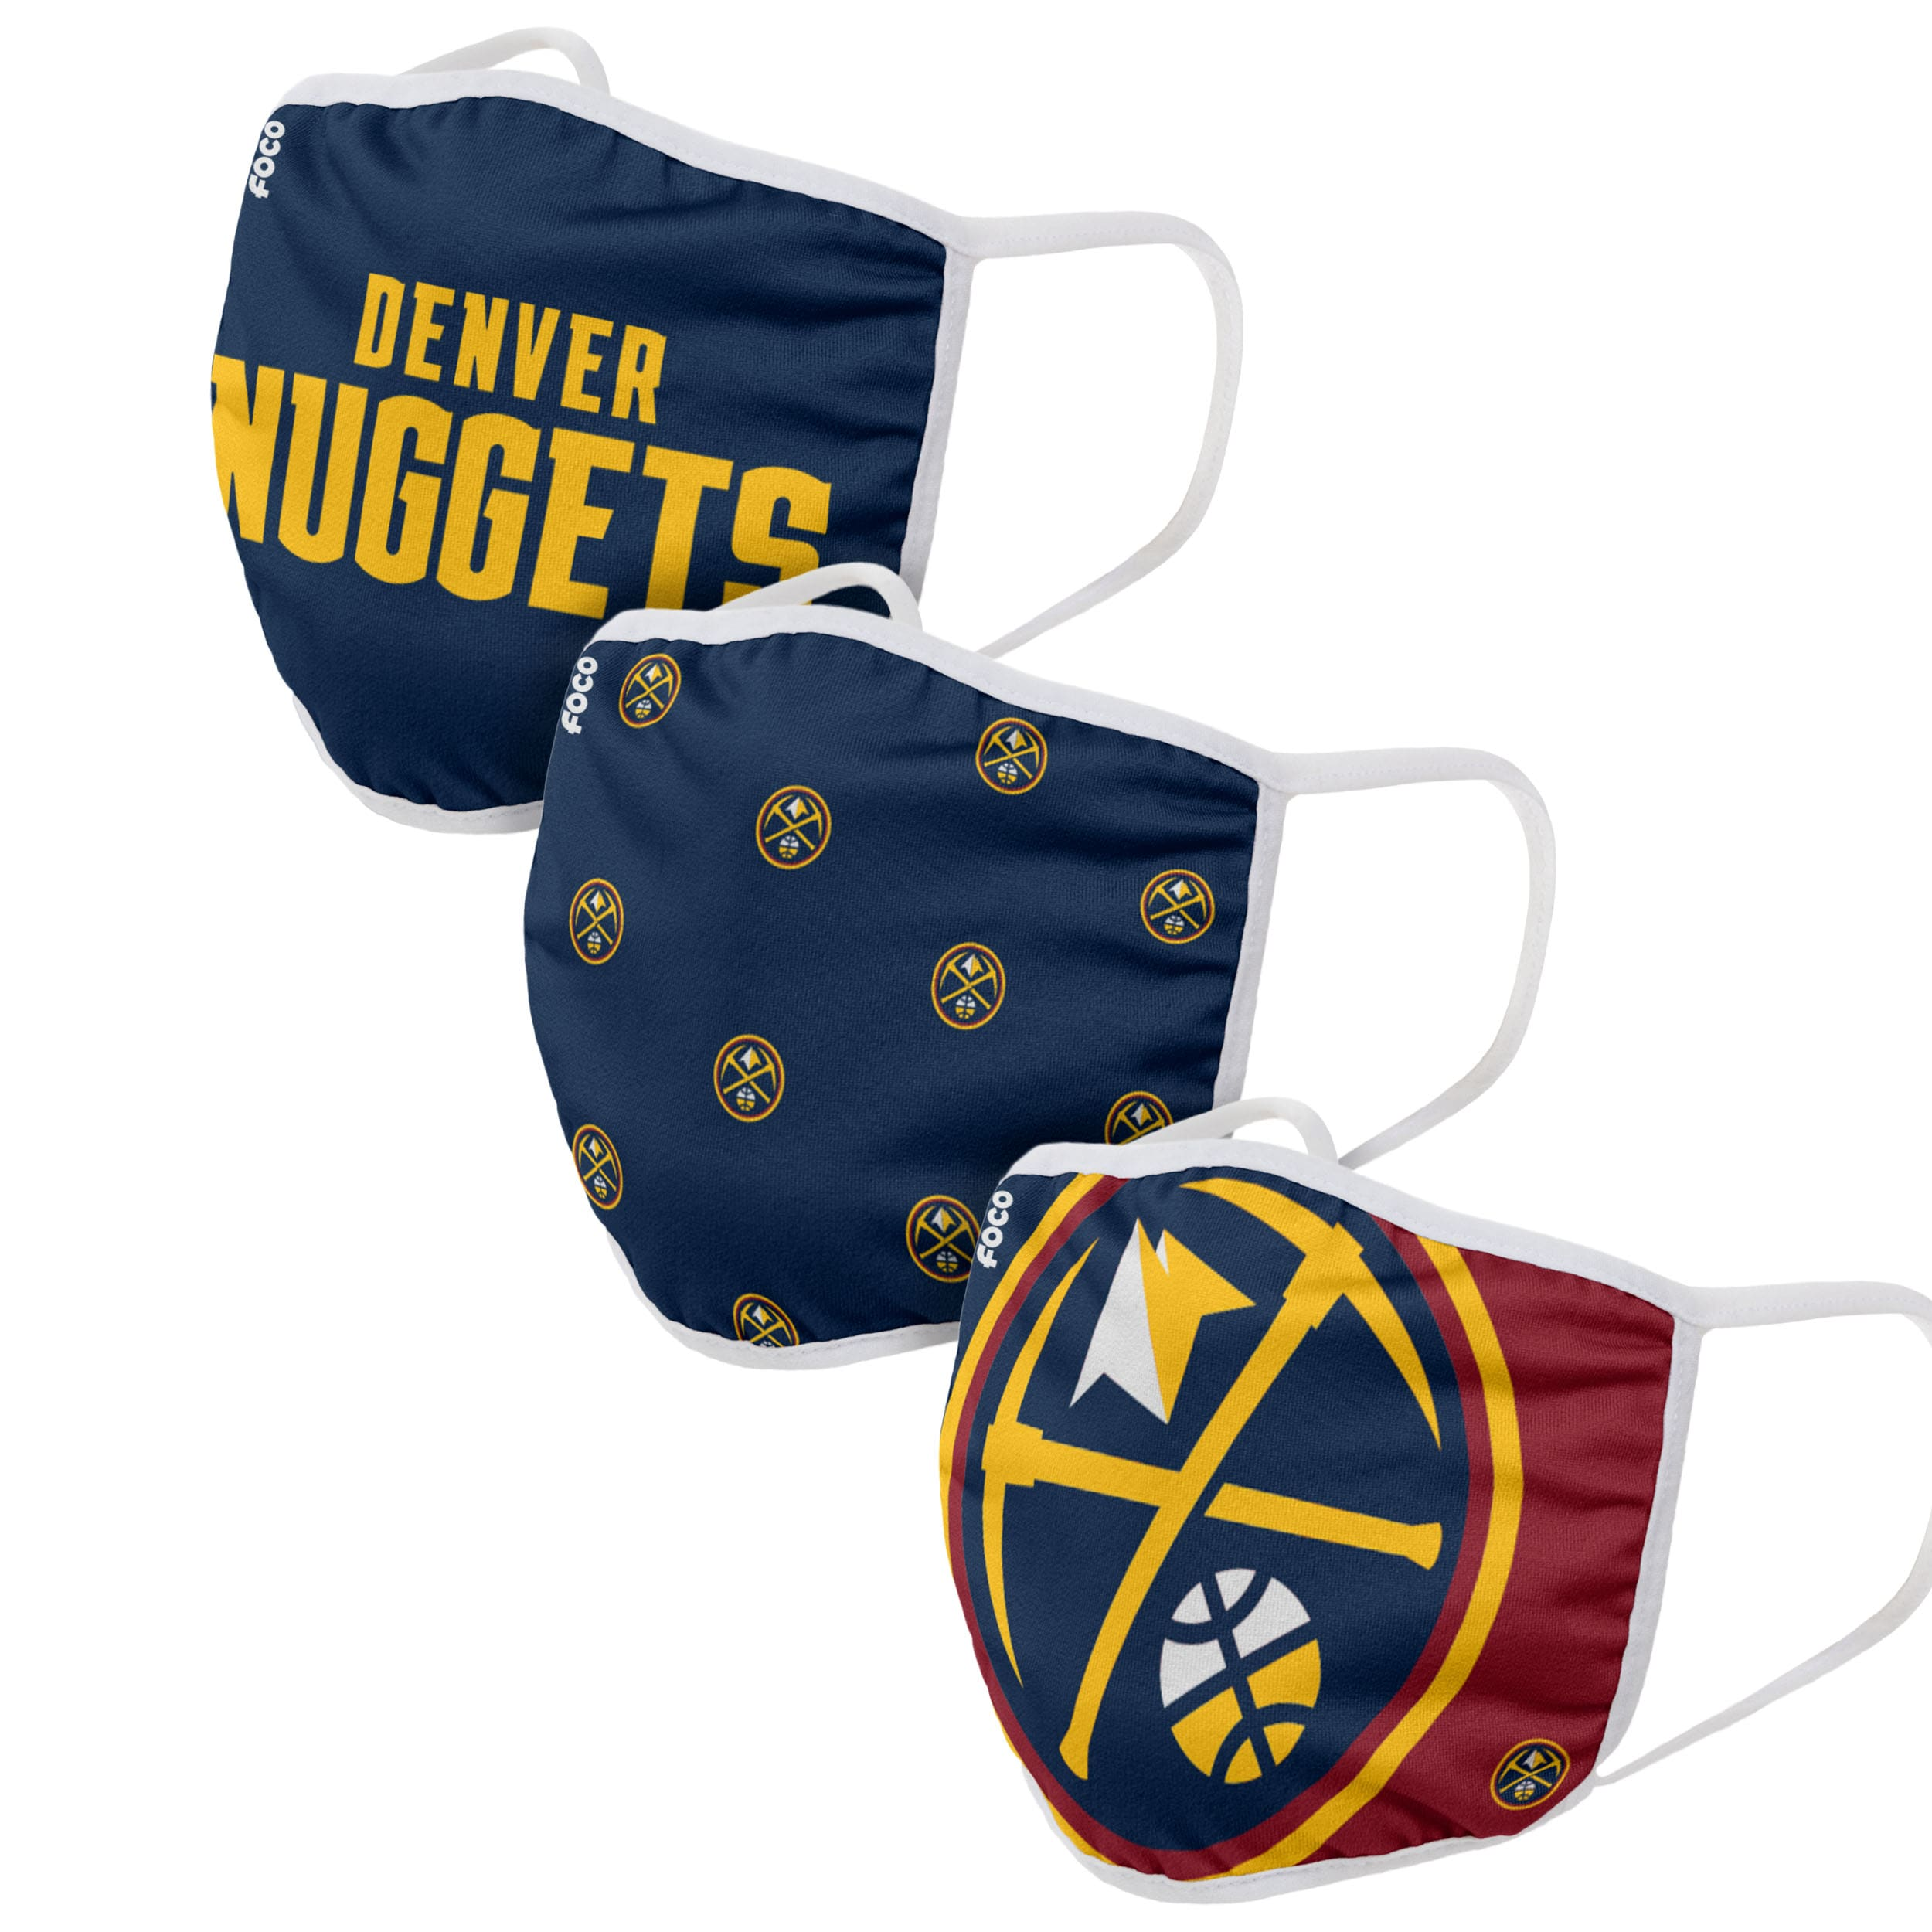 Denver Nuggets FOCO Face Covering (Size Small) 3-Pack